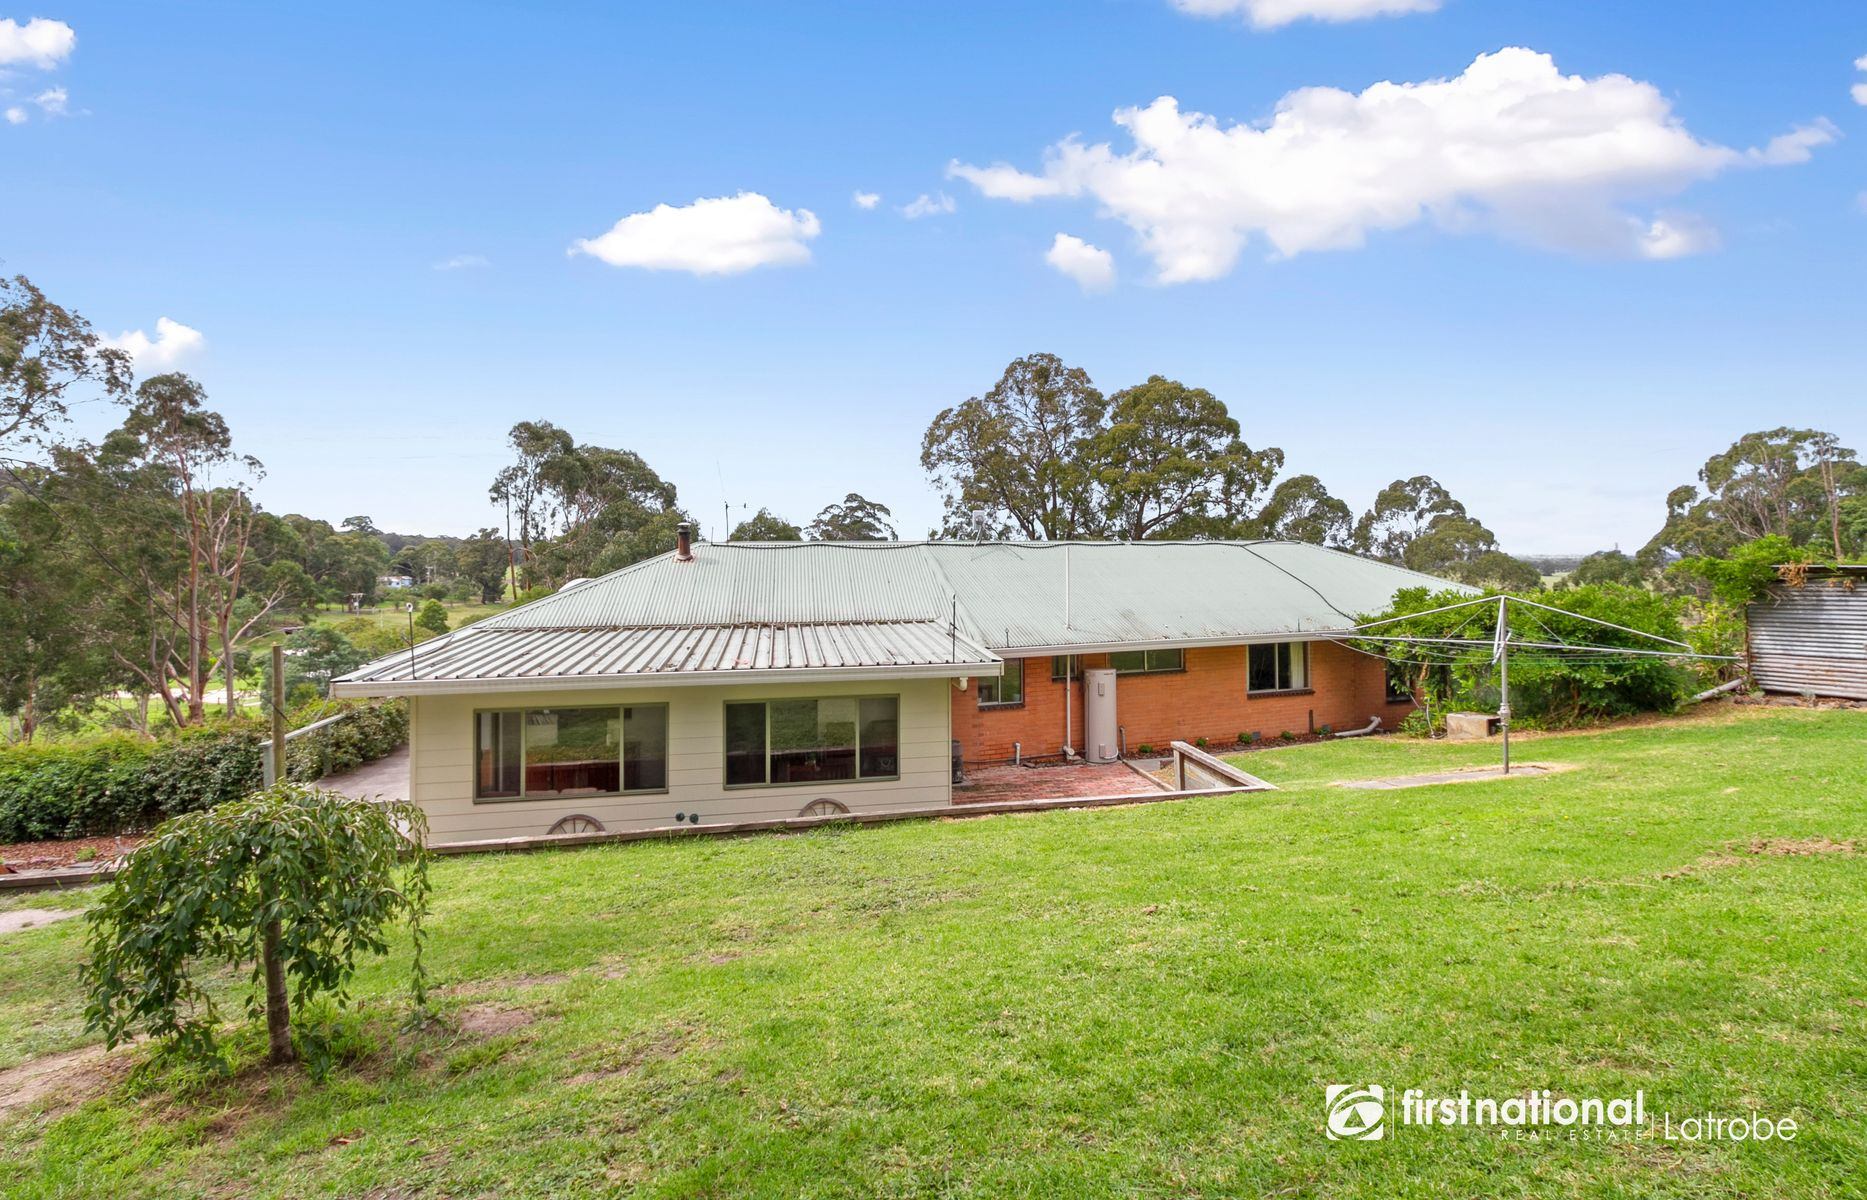 425 Frasers Lane, Glengarry, VIC 3854